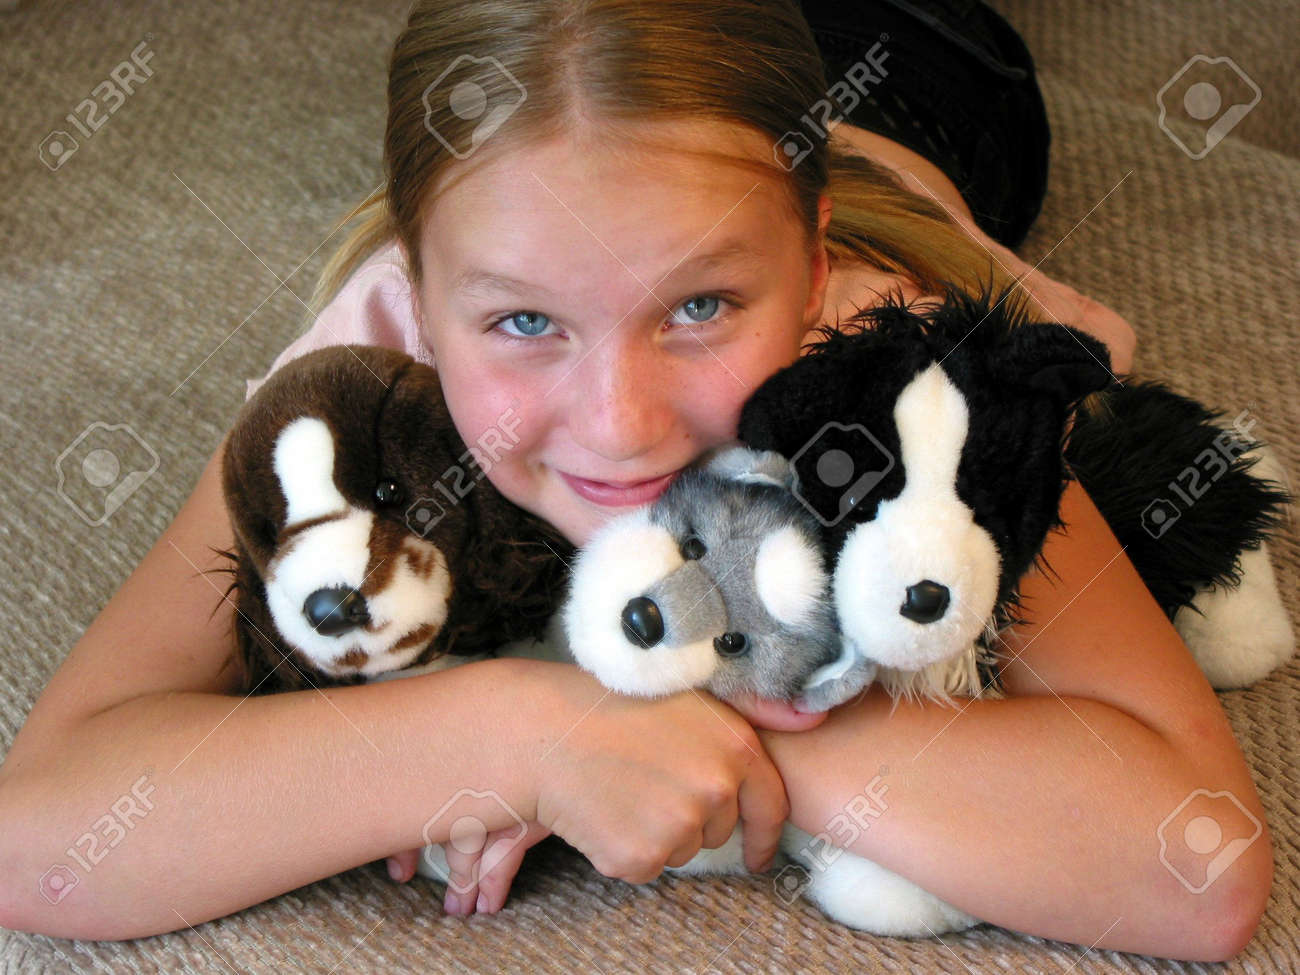 Happy young girl with her favourite plush toys. Stock Photo - 352526